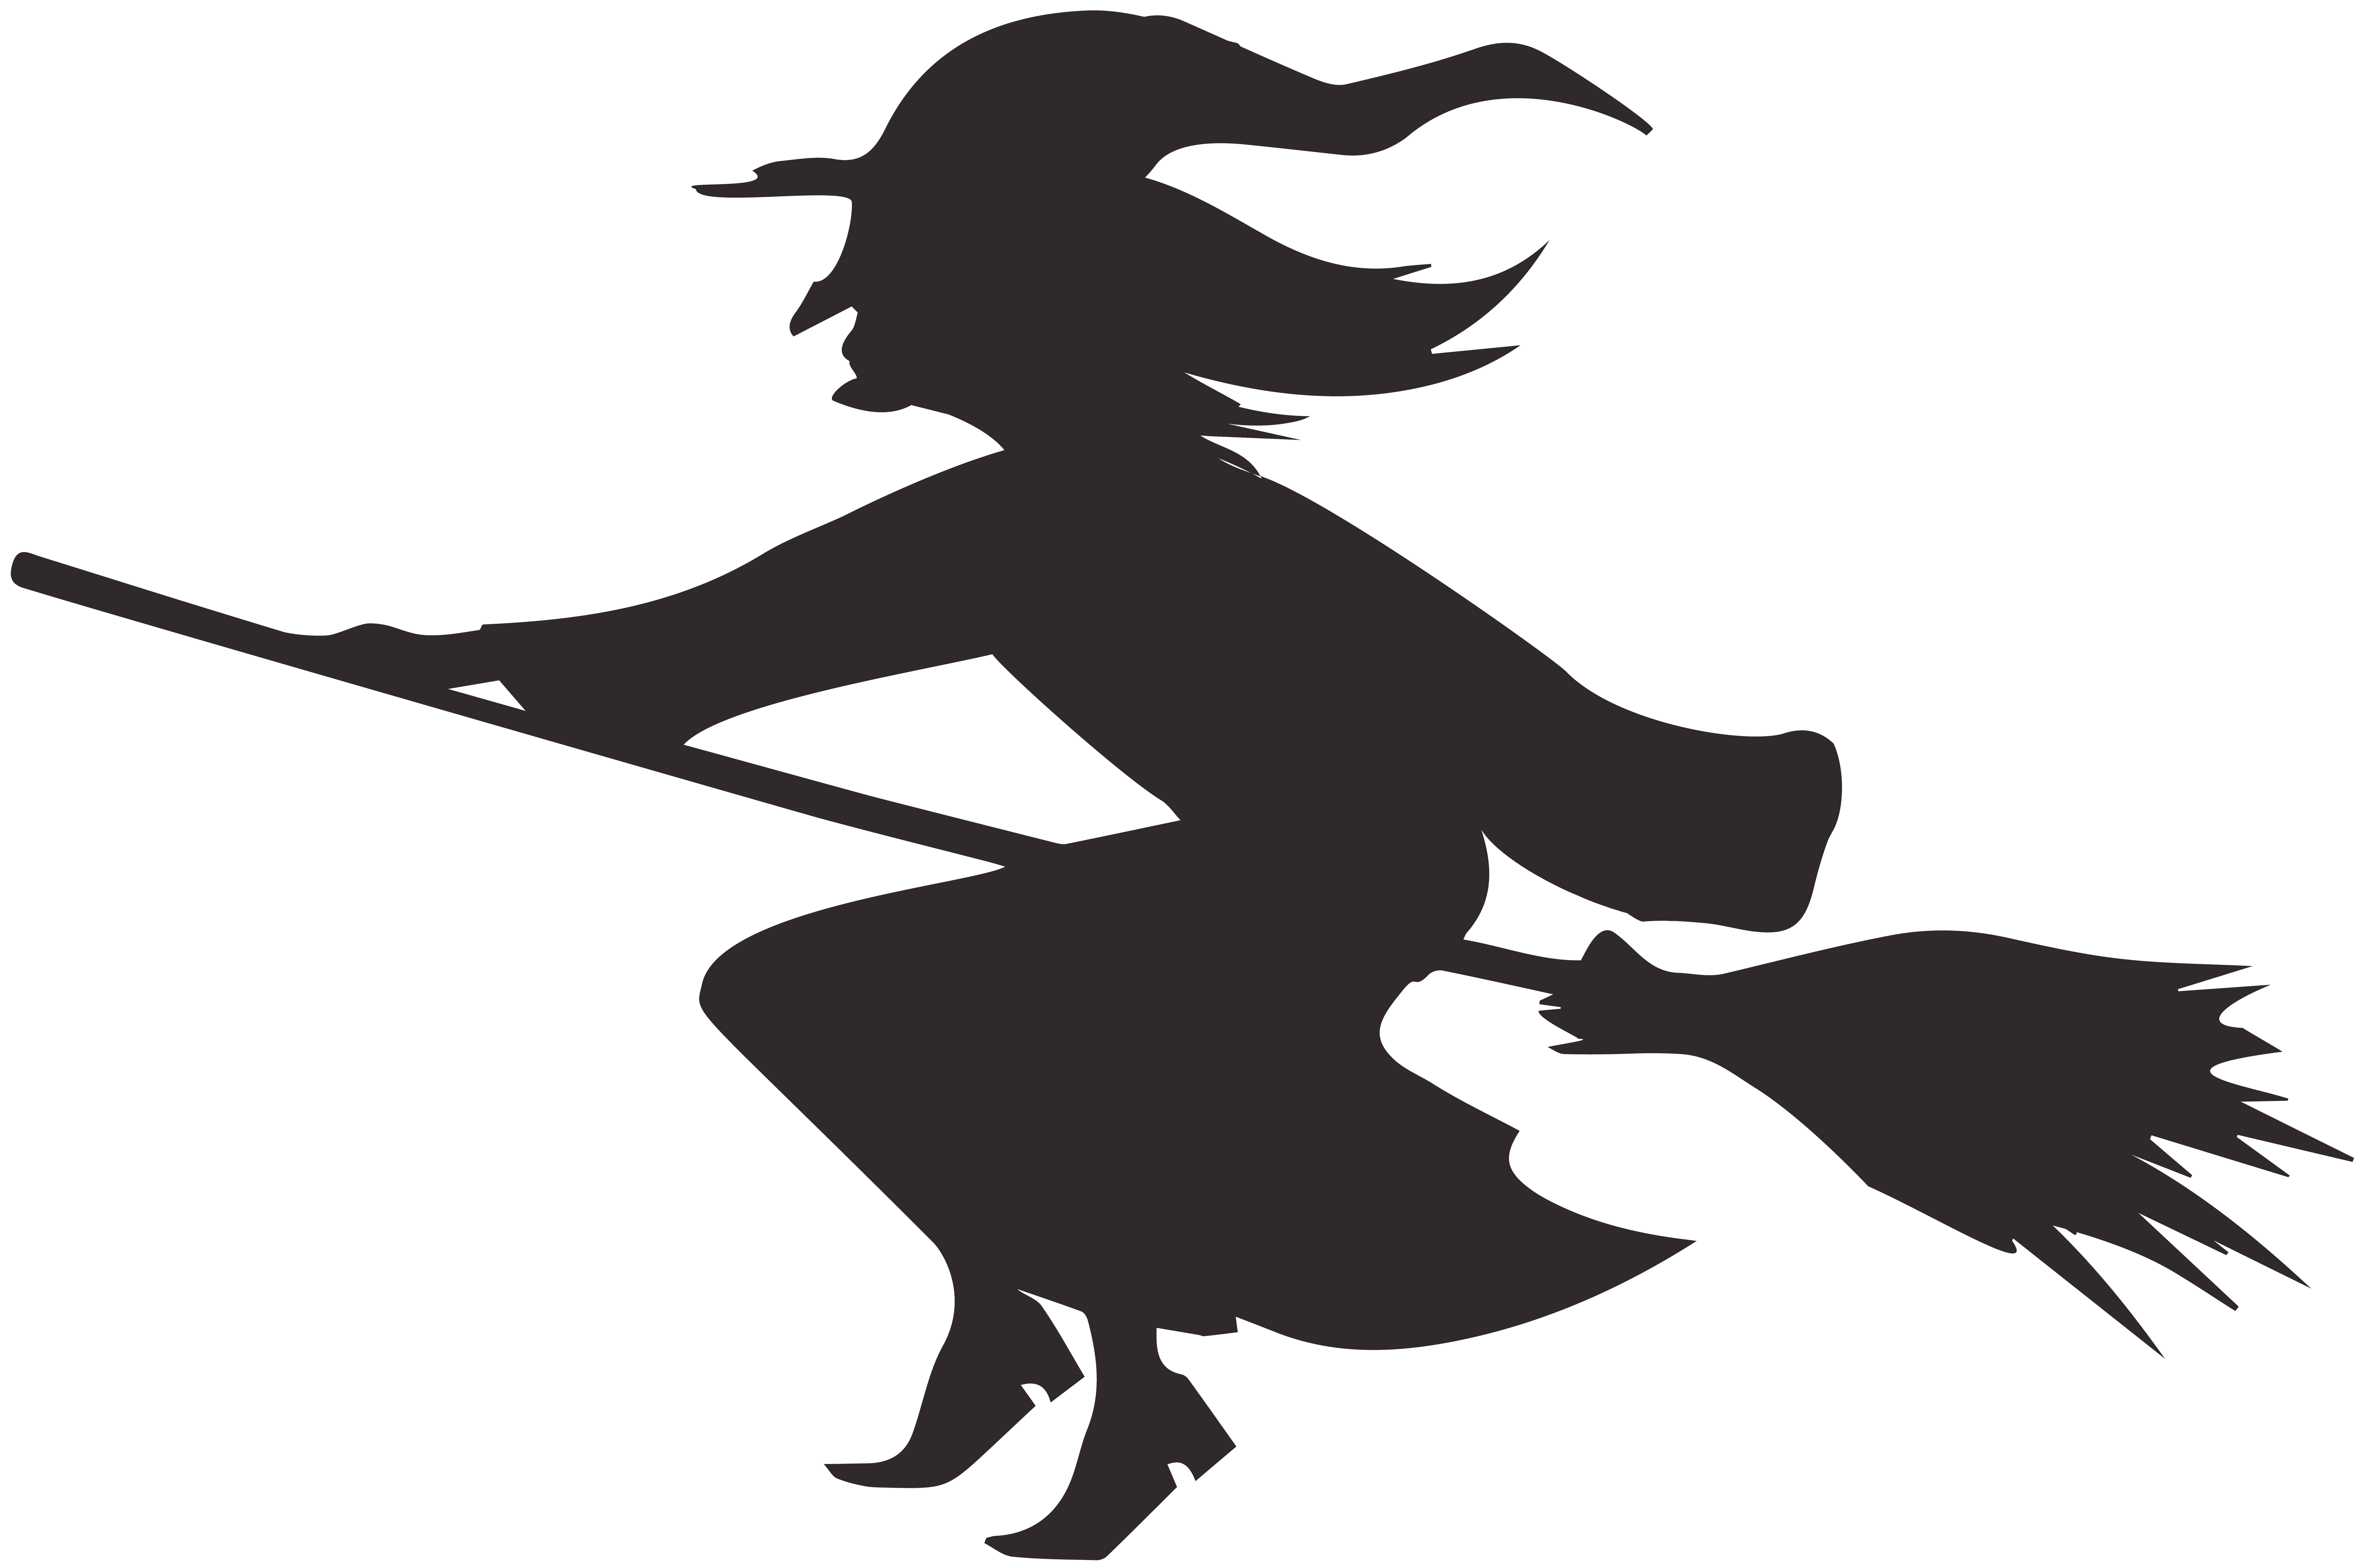 Halloween Witch Silhouette Png Clip Art Image Gallery Yopriceville High Quality Images And Transparent Png Free Witch Silhouette Silhouette Png Art Images